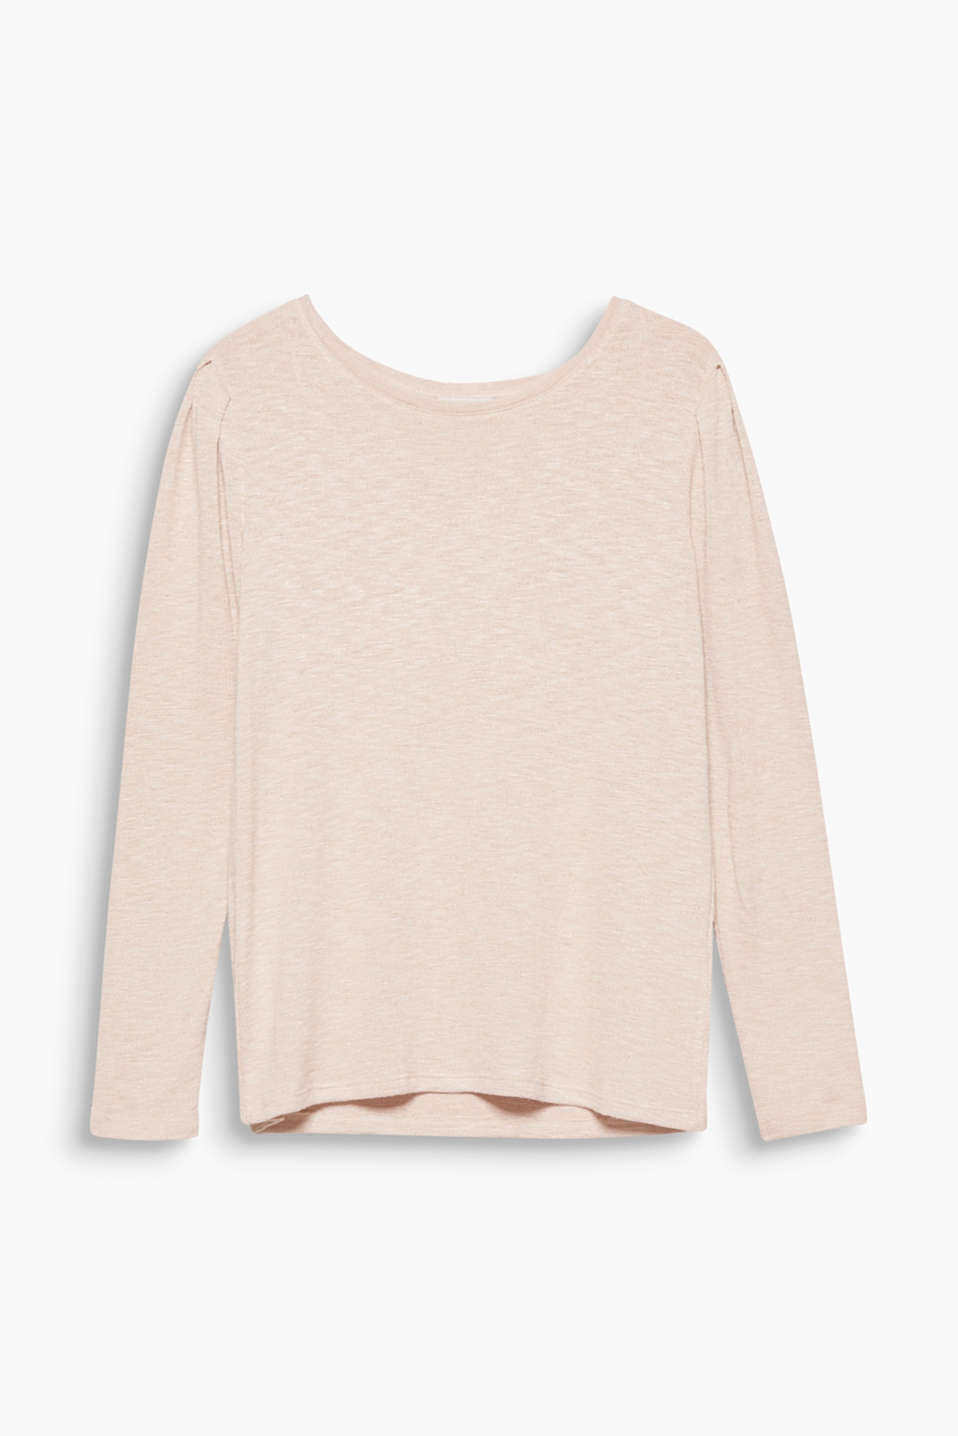 Gathered seams on the shoulders give this long sleeve top its feminine look in soft, textured jersey.